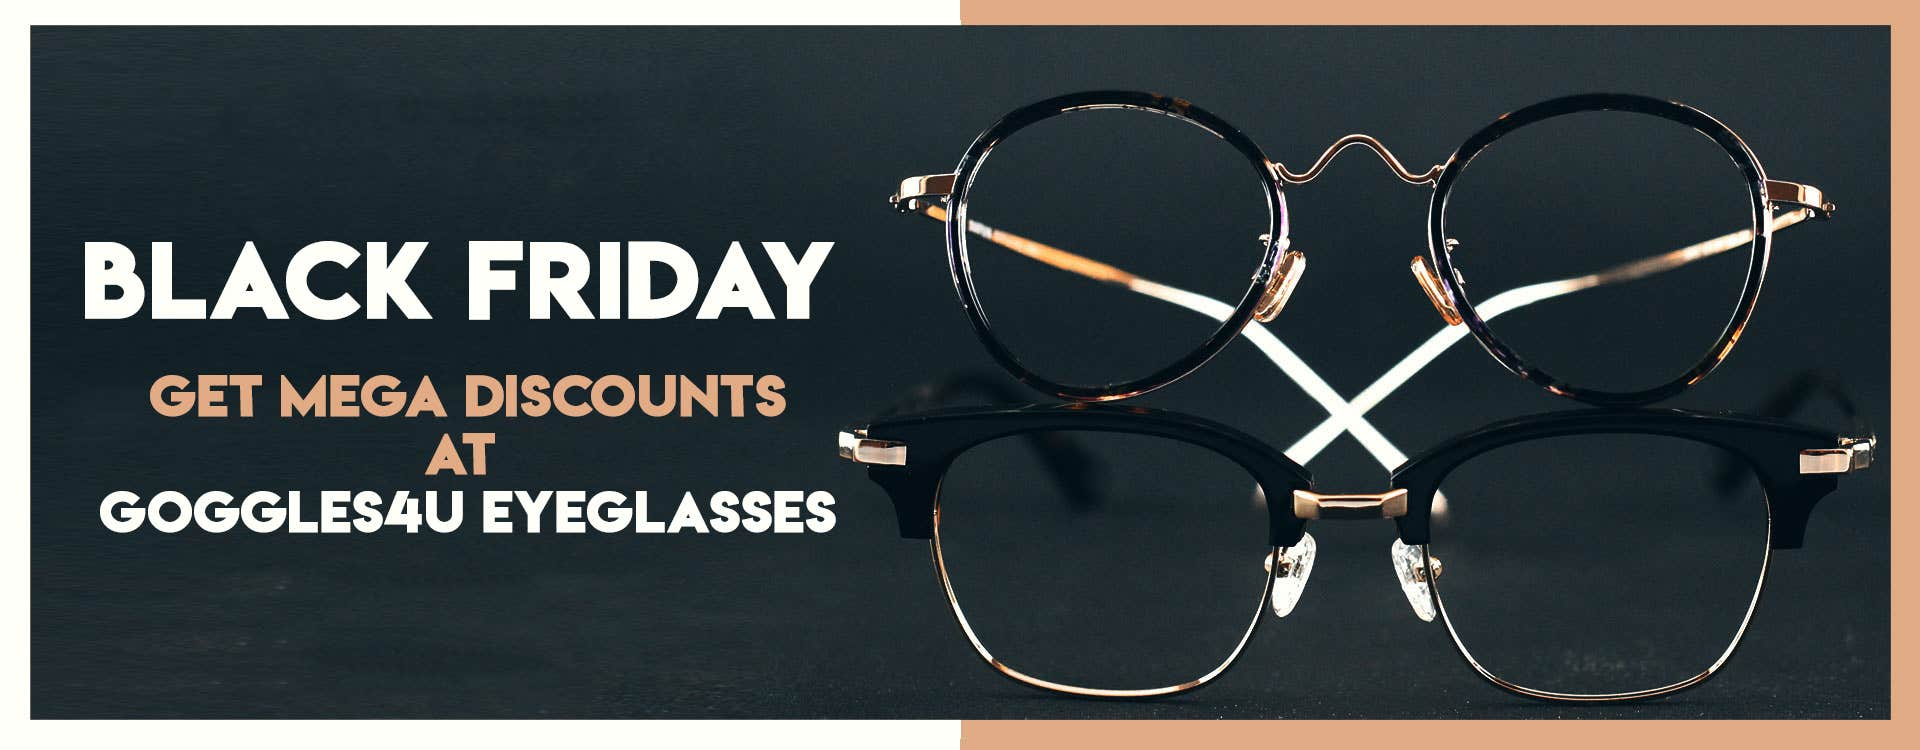 Black Friday: Get Mega Discounts at Goggles4U Eyeglasses